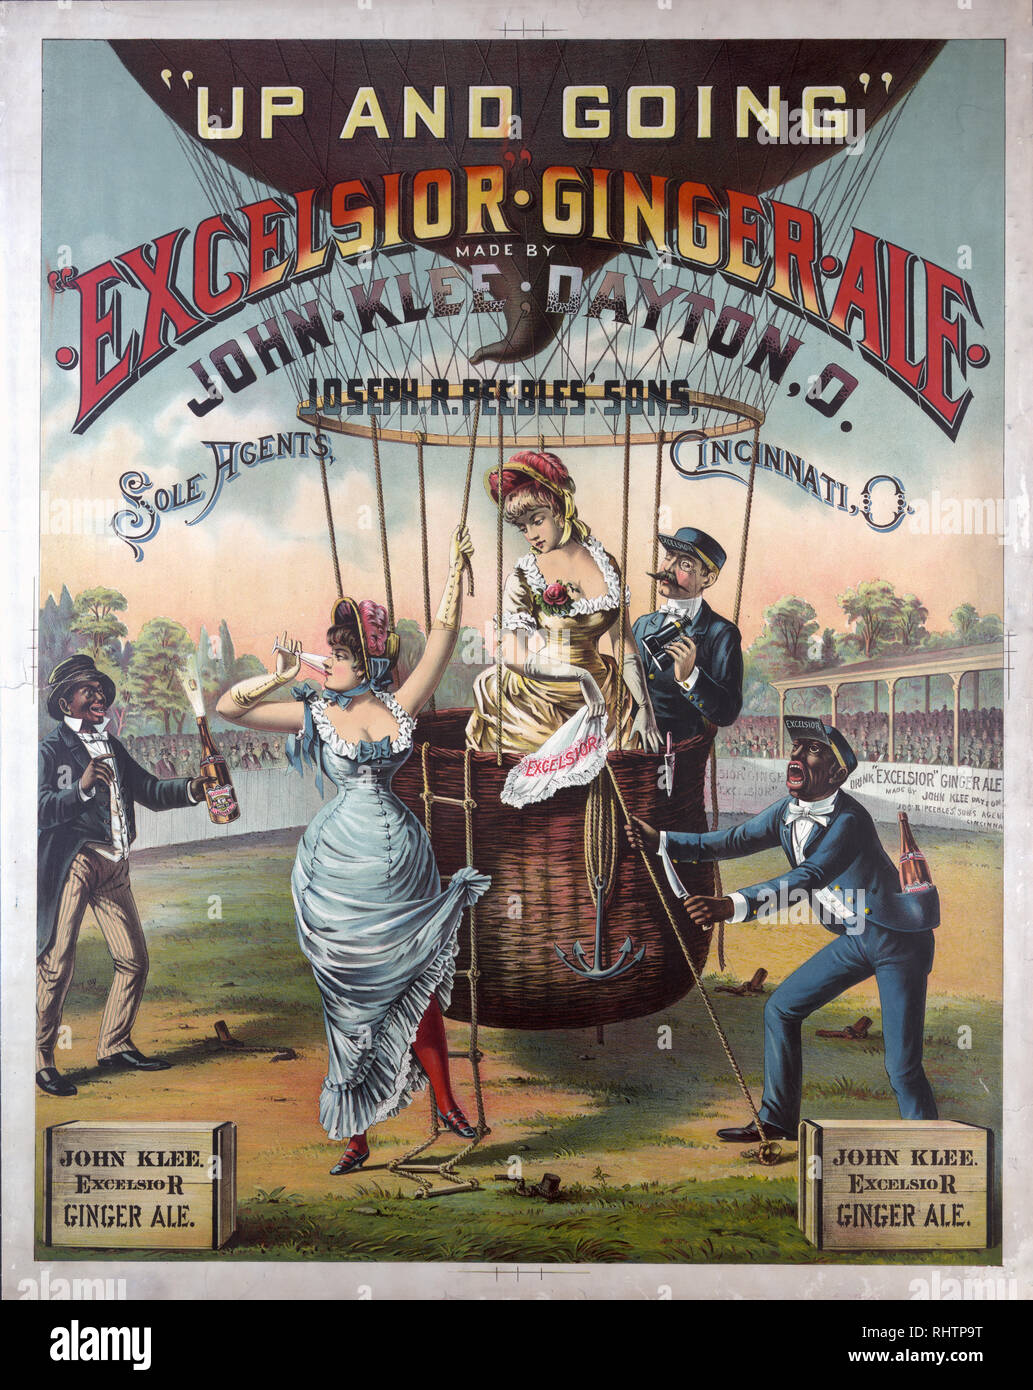 Up and going, Excelsior ginger ale... ca. 1885 - Stock Image